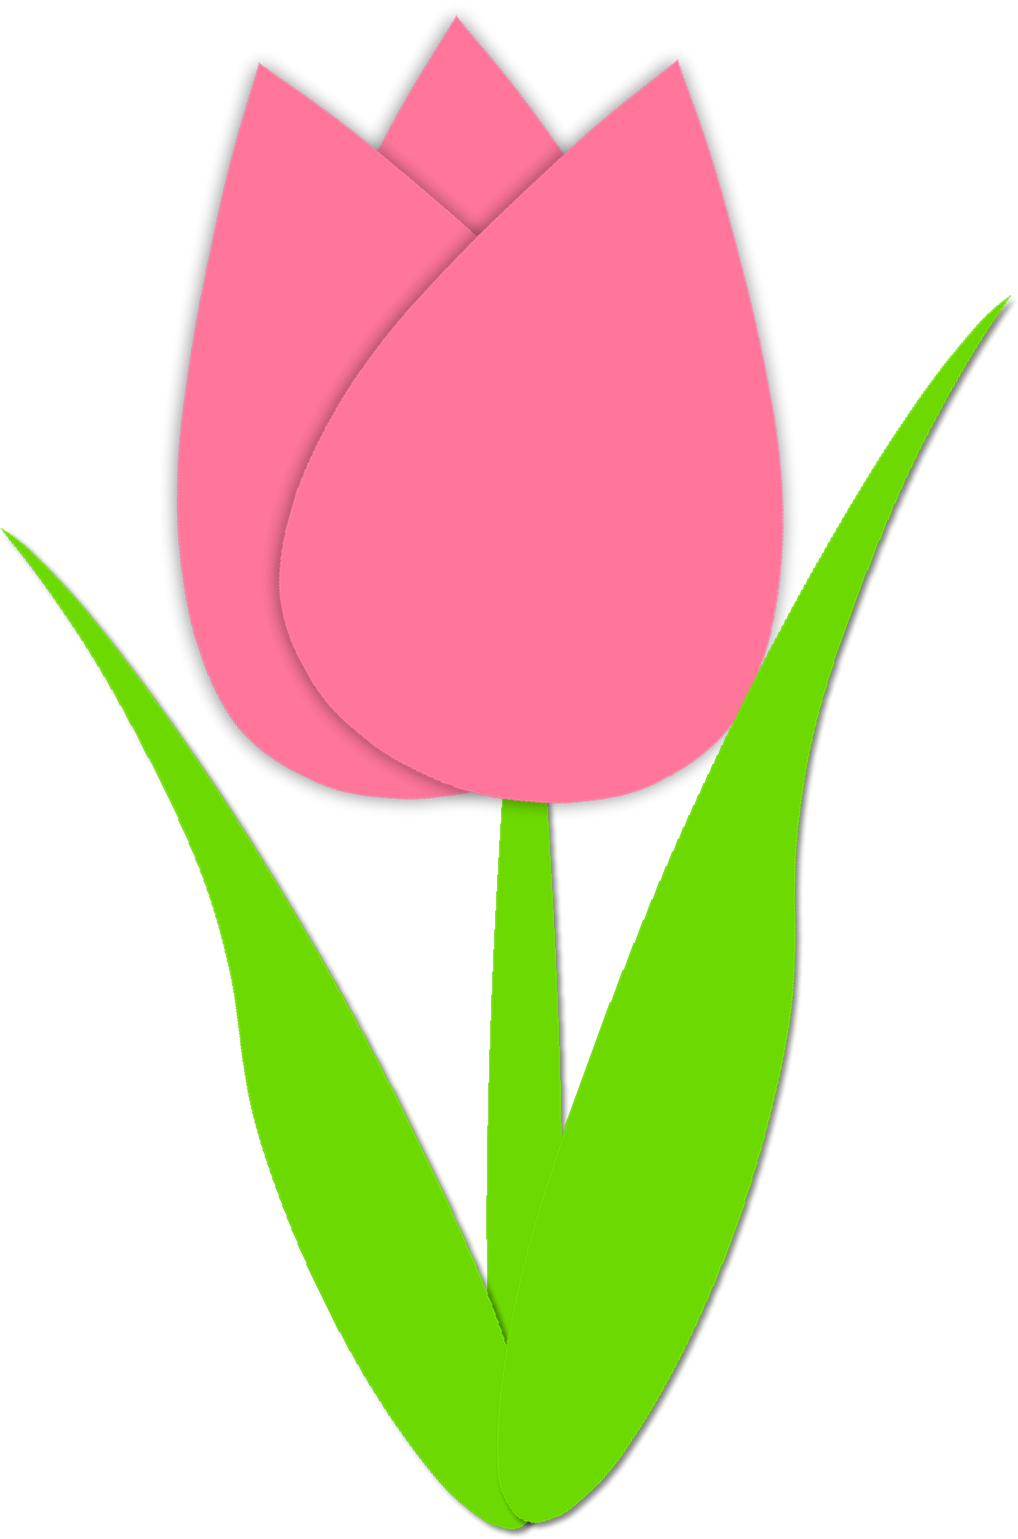 Tulip clipart #3, Download drawings